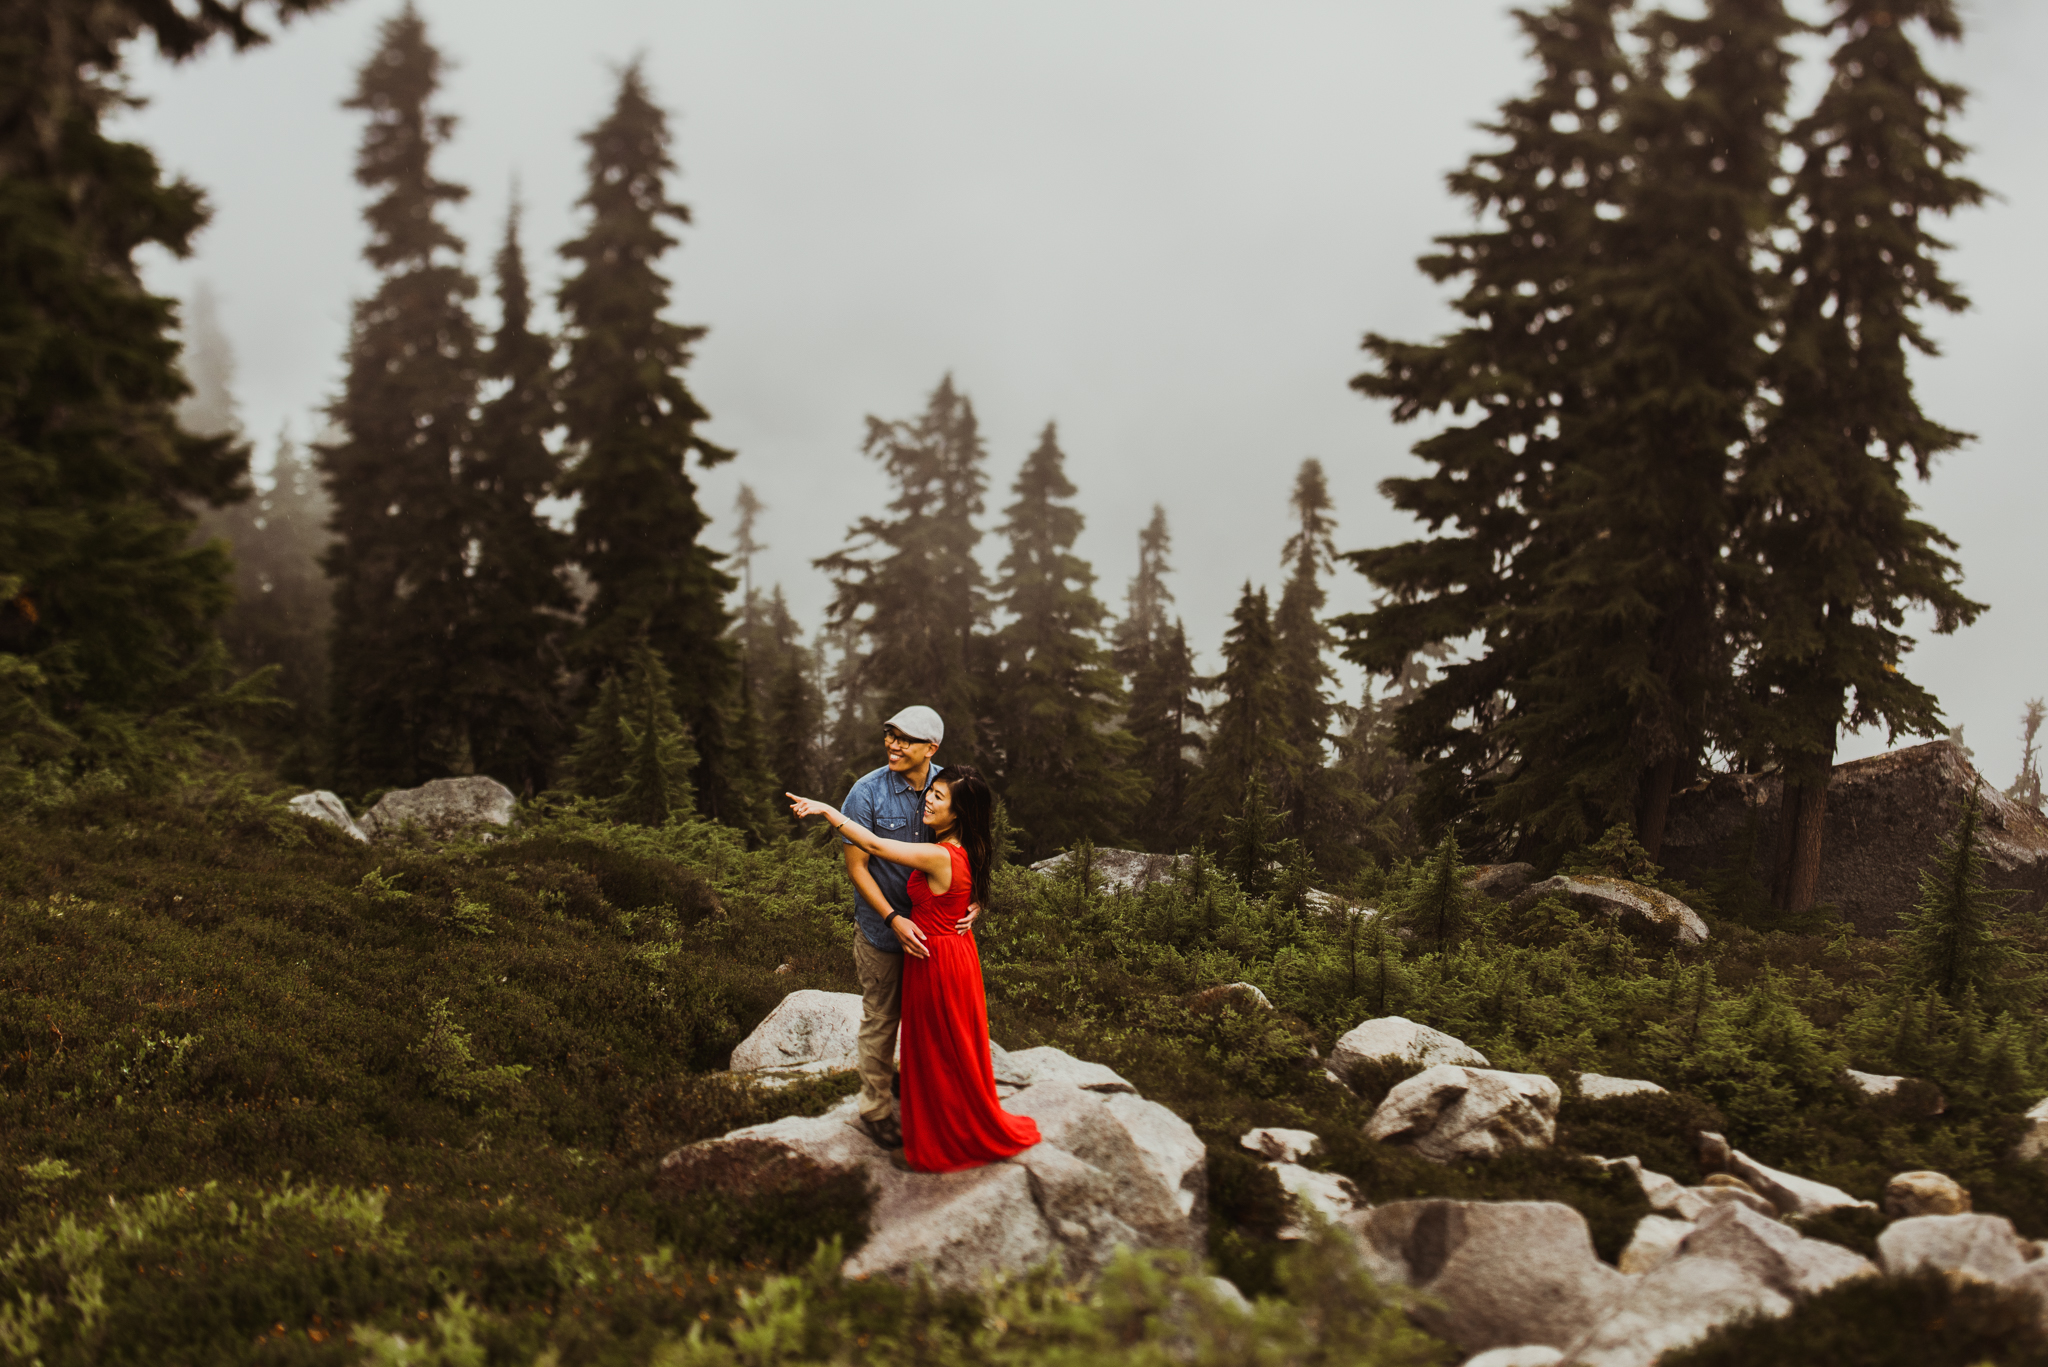 ©Isaiah-&-Taylor-Photography---Hidden-Lake-Cascade-Mountains-Engagement,-Washington-078.jpg